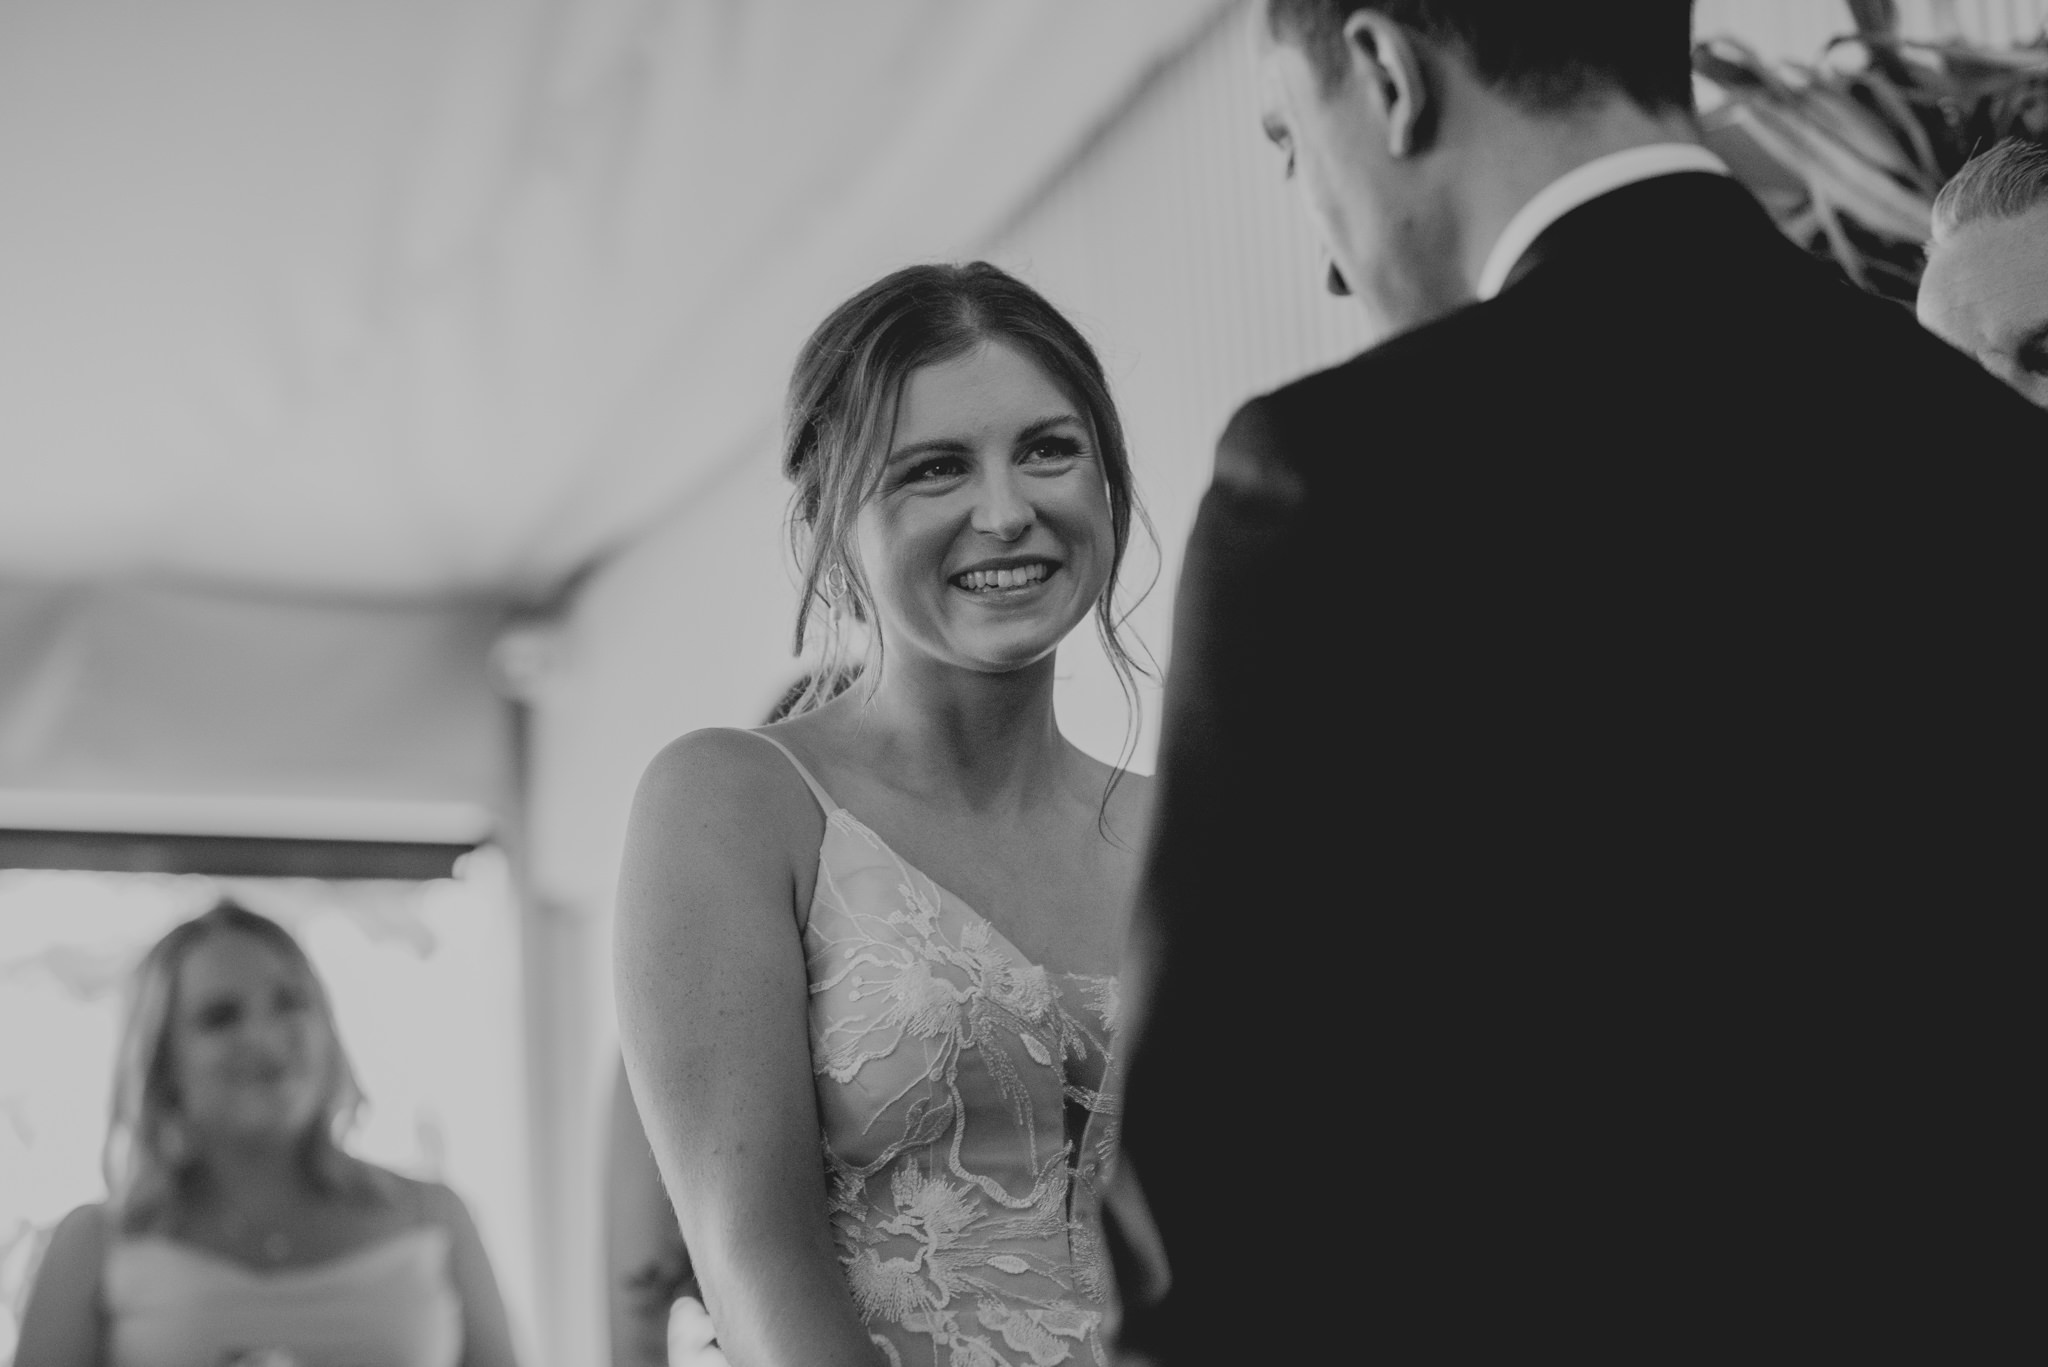 Bride smiles and laughs at husband-to-be during wedding